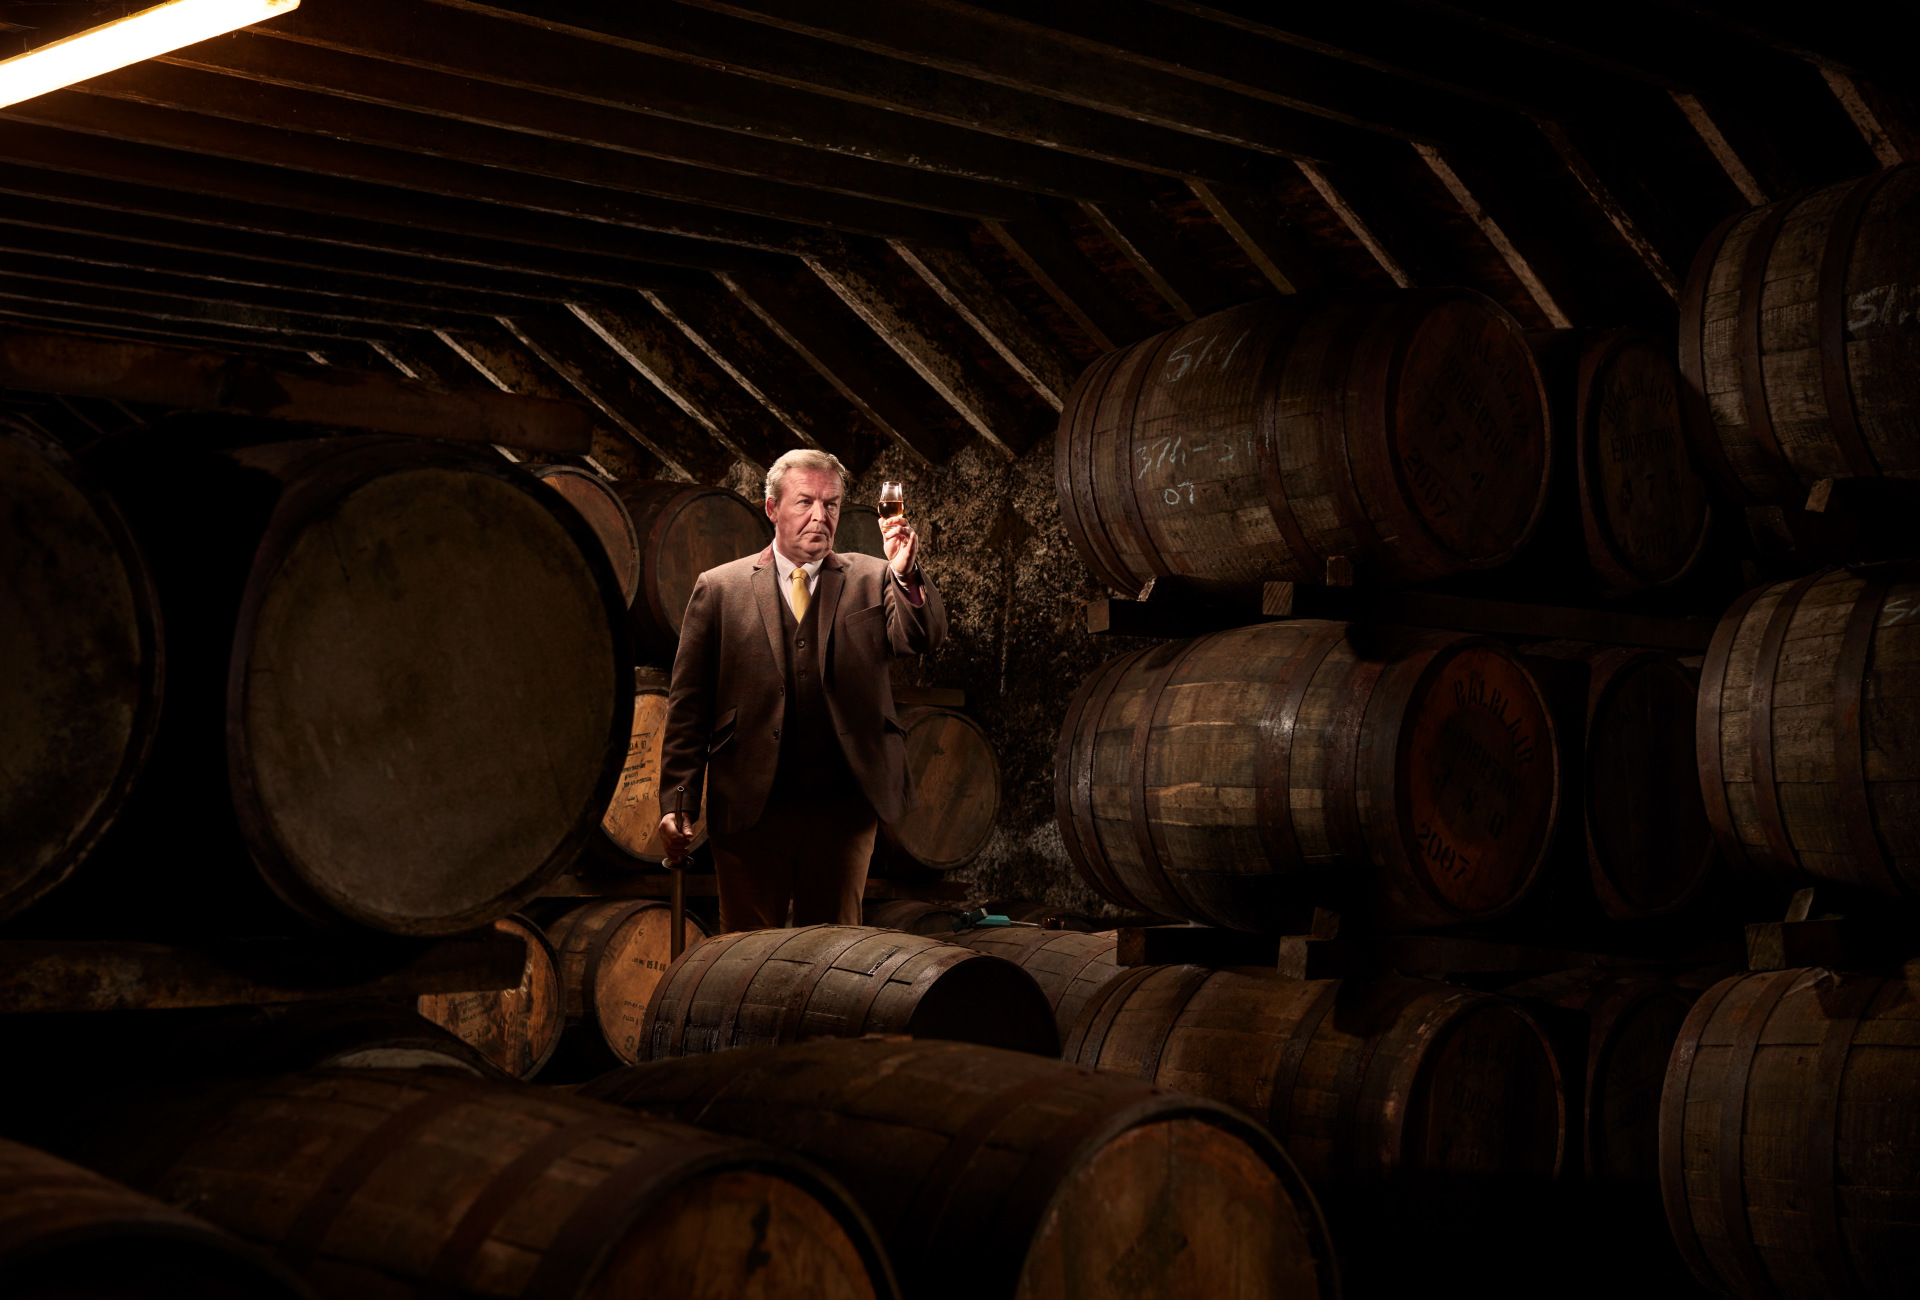 Balblair Distillery Manager - a native Highlander, John has always had an in-built appreciation and respect for whisky-making, and has dedicated his entire working life to the craft.